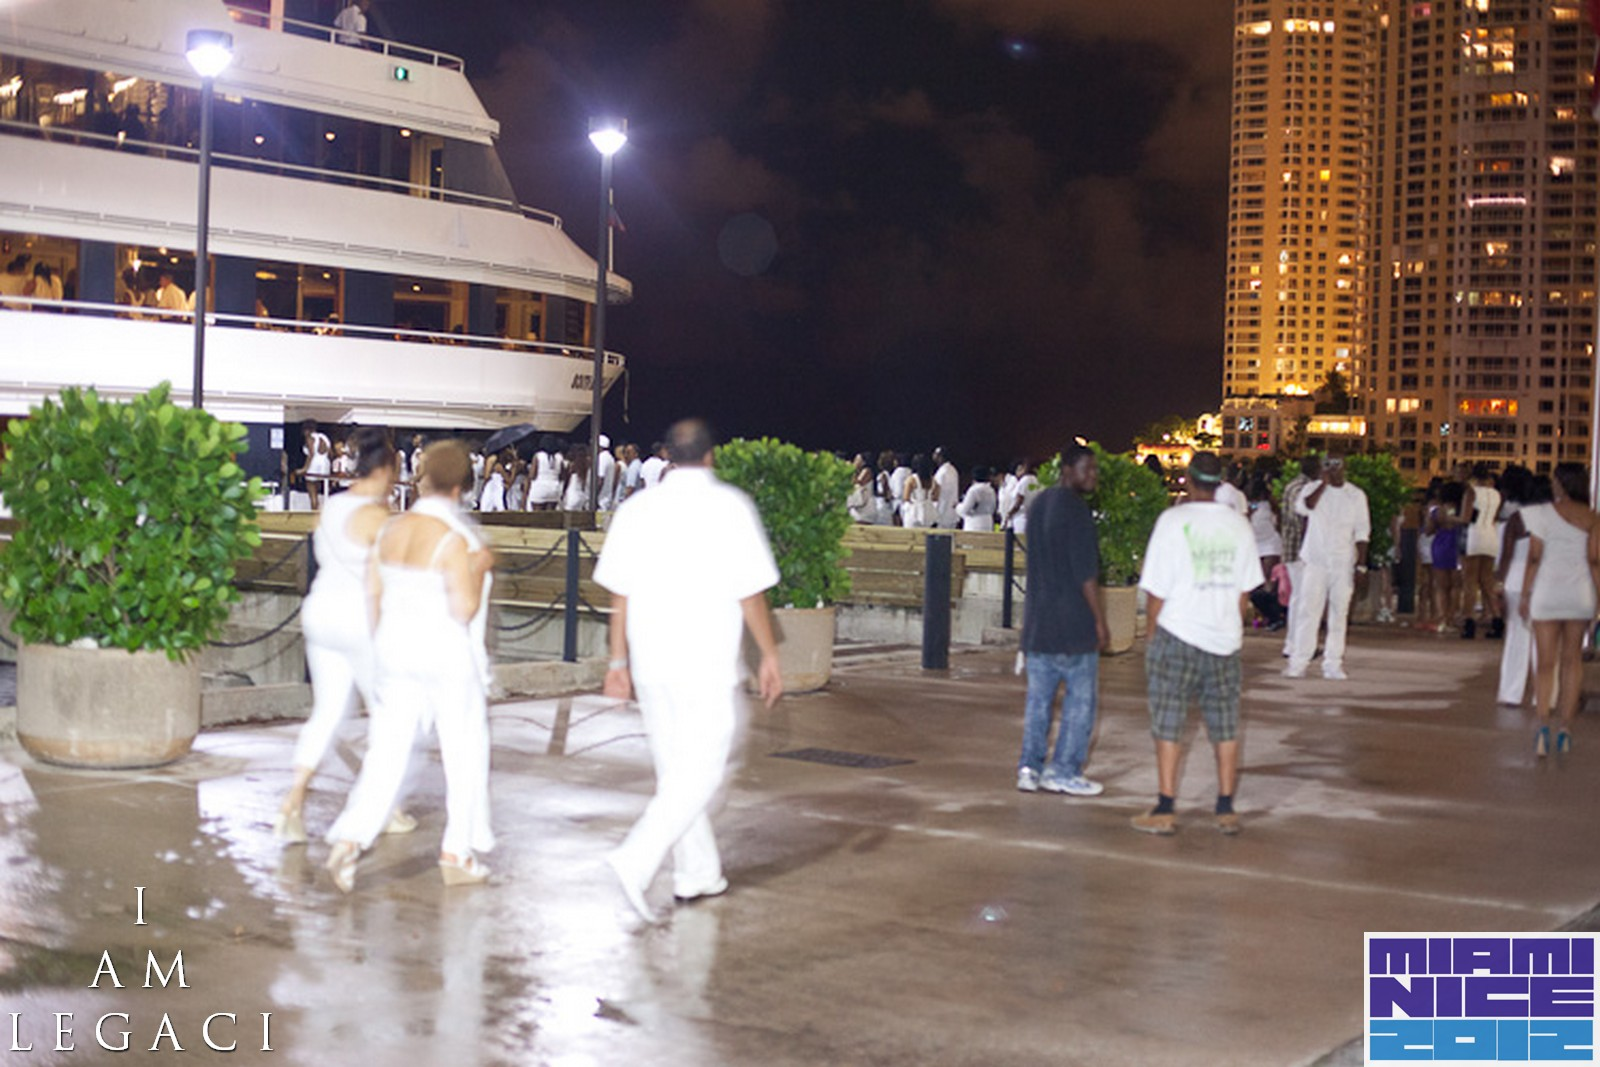 sold out miami nice 2013 the annual miami carnival all white yacht party columbus day. Black Bedroom Furniture Sets. Home Design Ideas